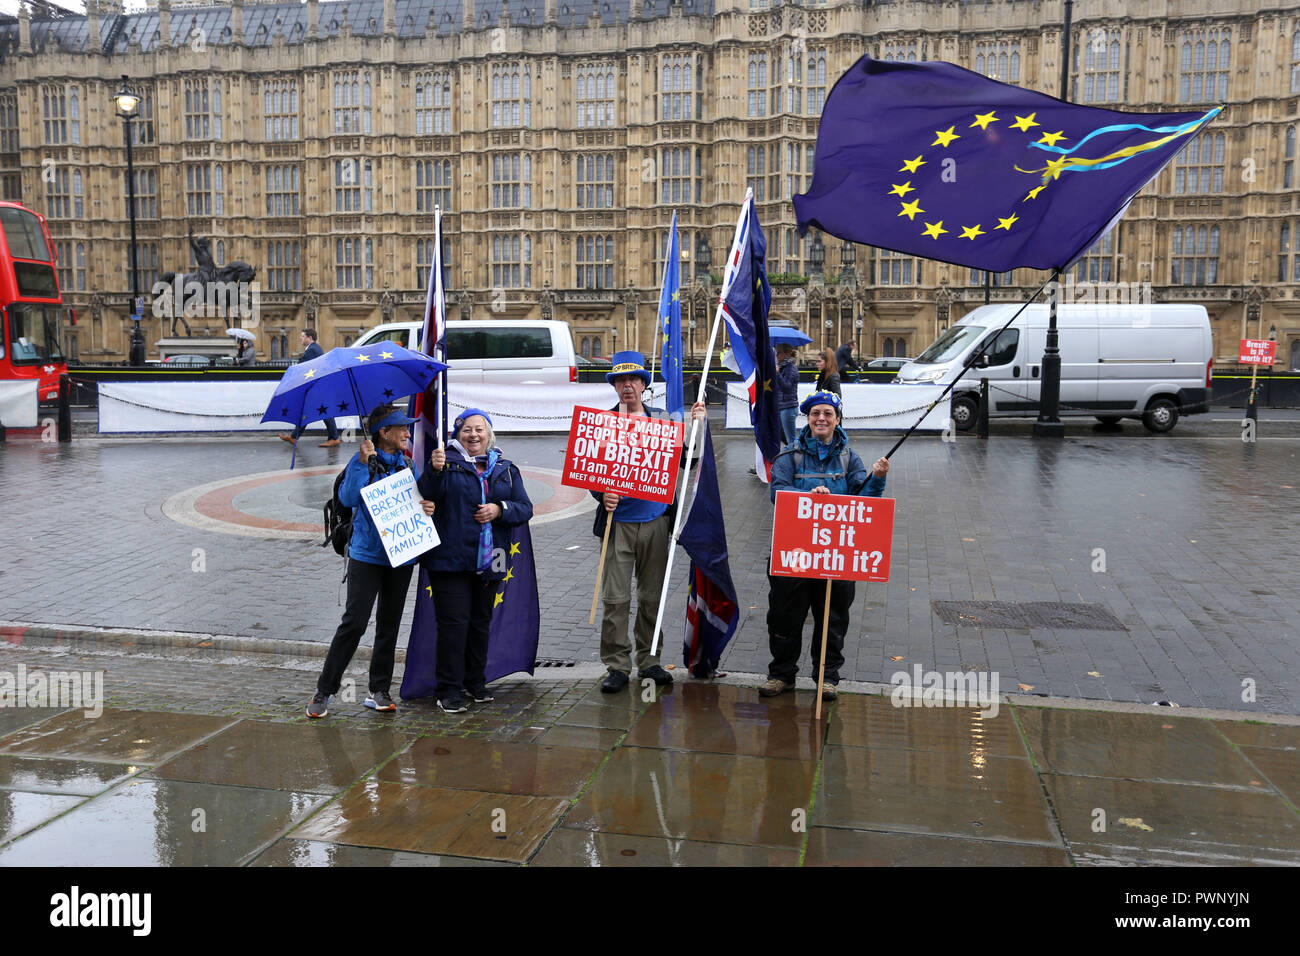 Westminster Brexit Stock Photos & Westminster Brexit Stock ...